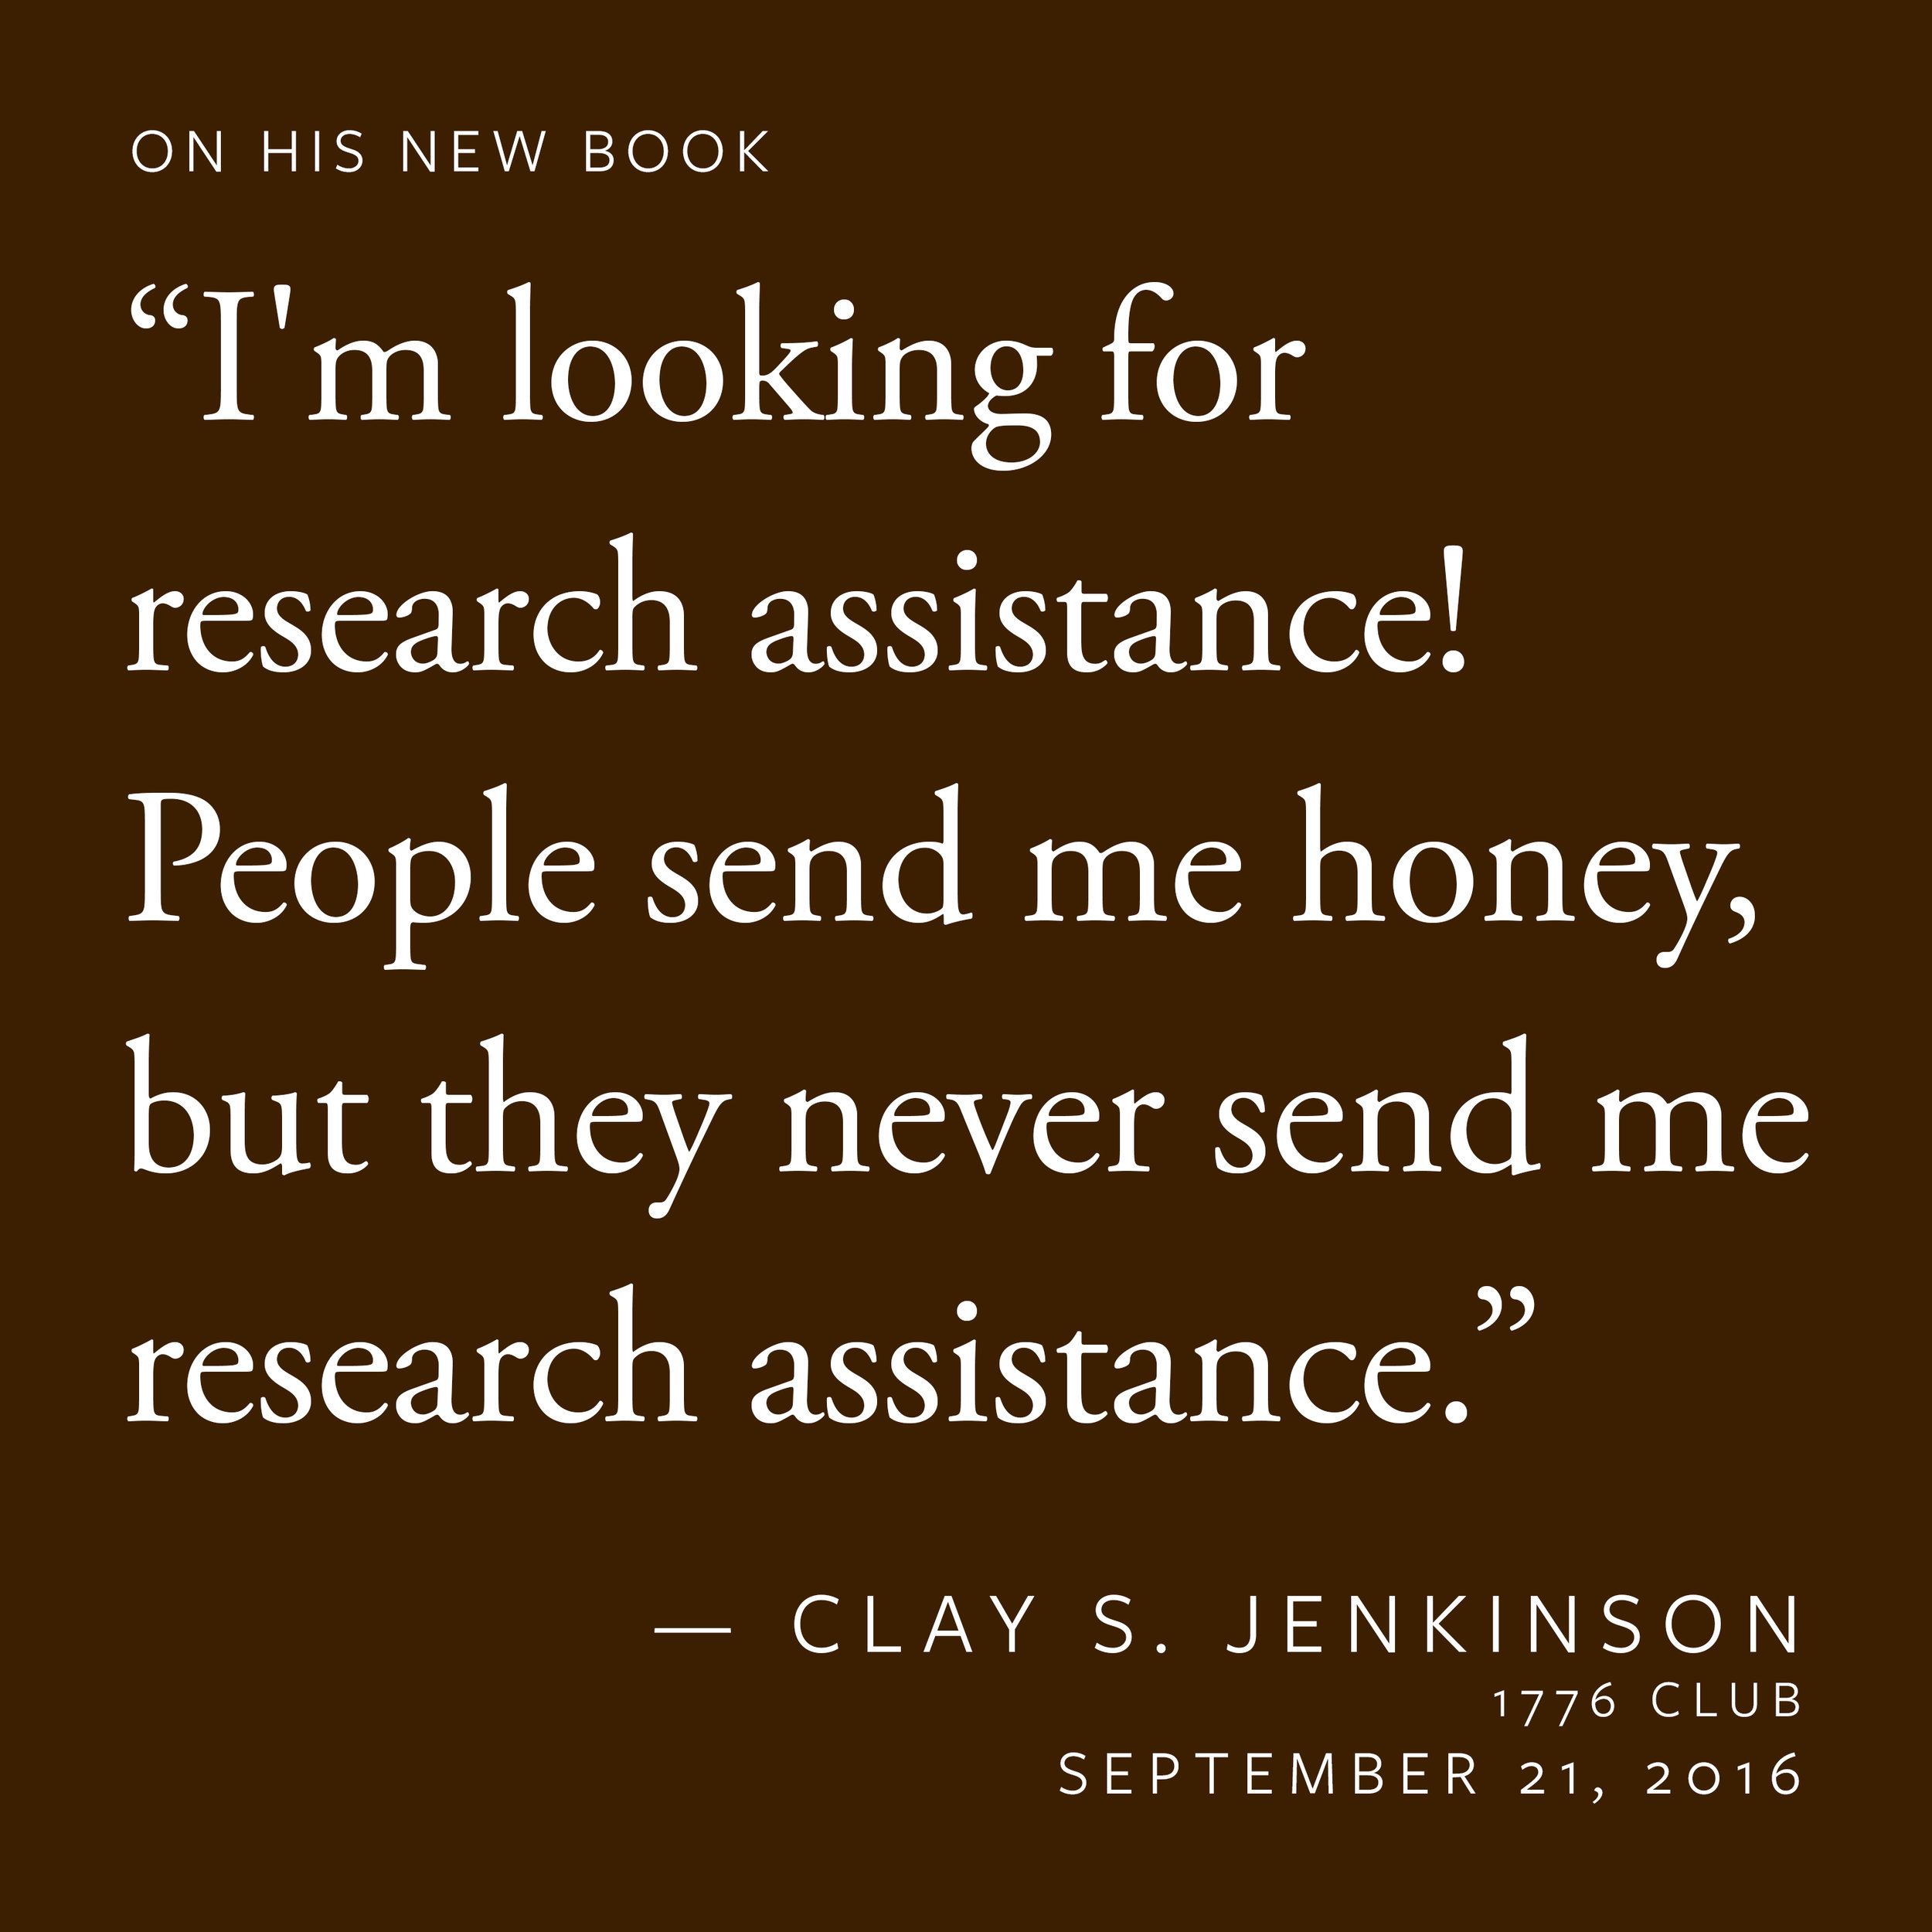 """""""I'm looking for research assistance! People send me honey, but they never send me research assistance.""""  — Clay S. Jenkinson"""